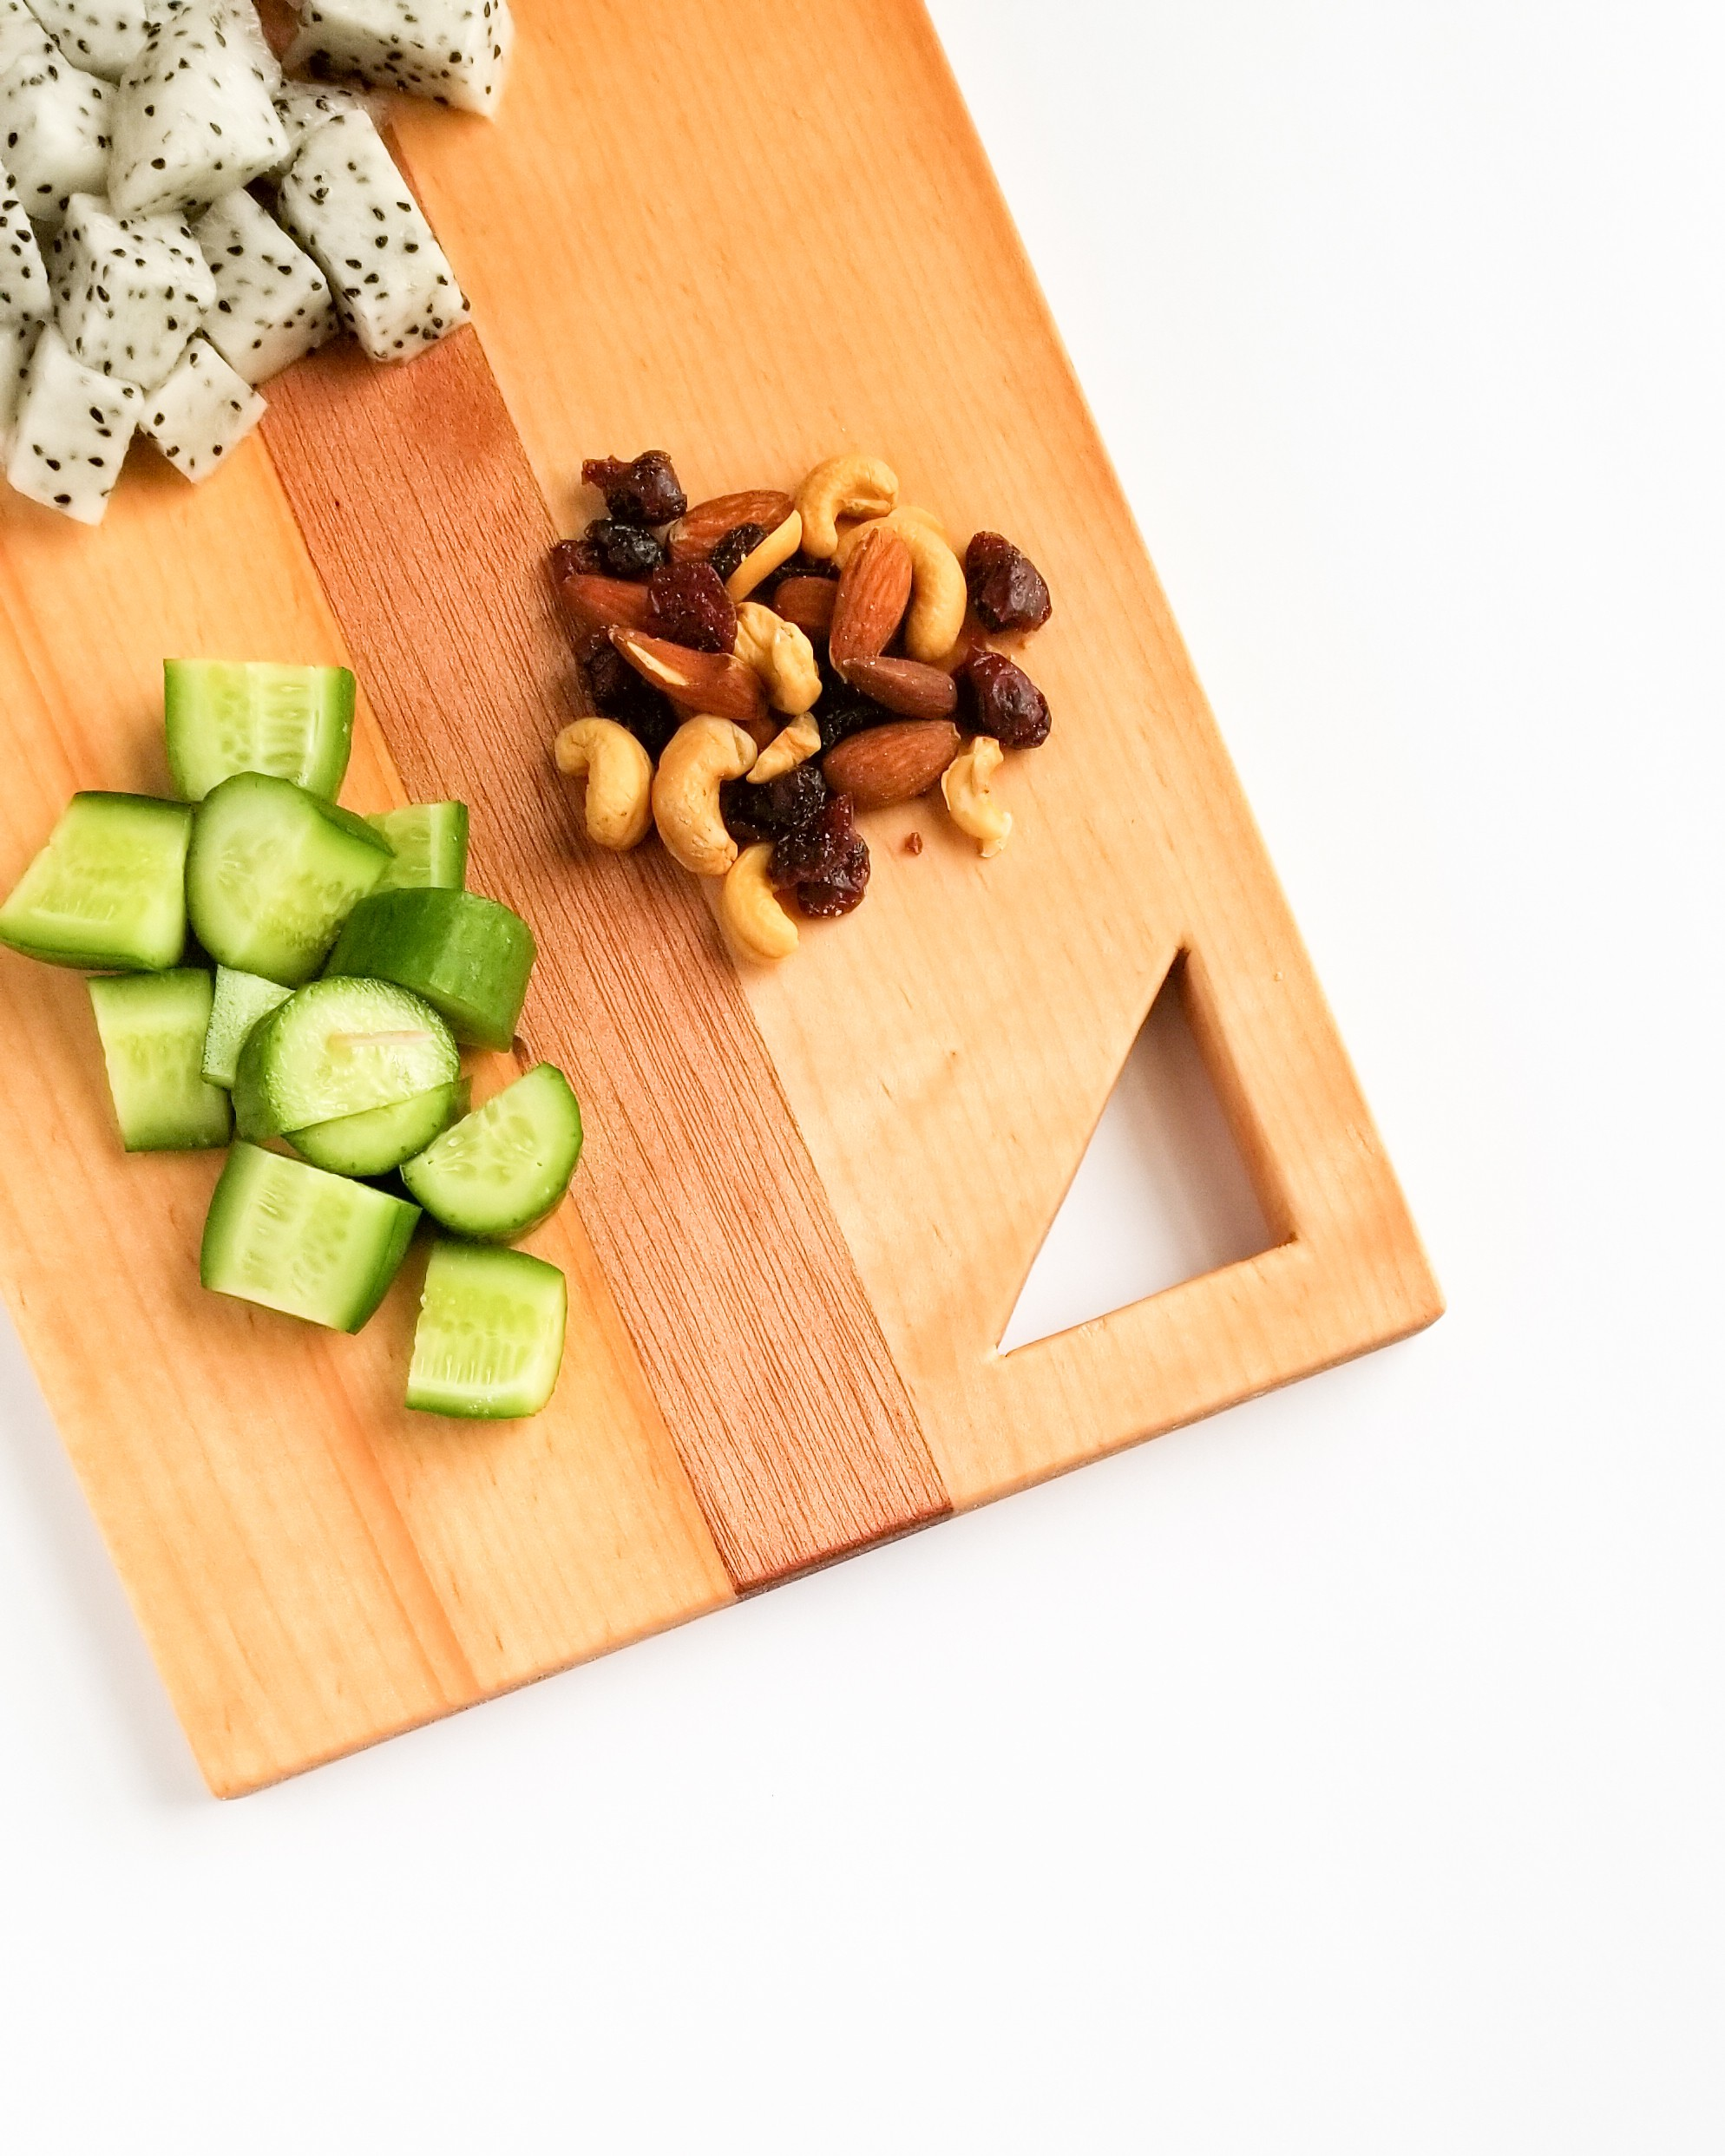 DIY Wooden Cutting Board